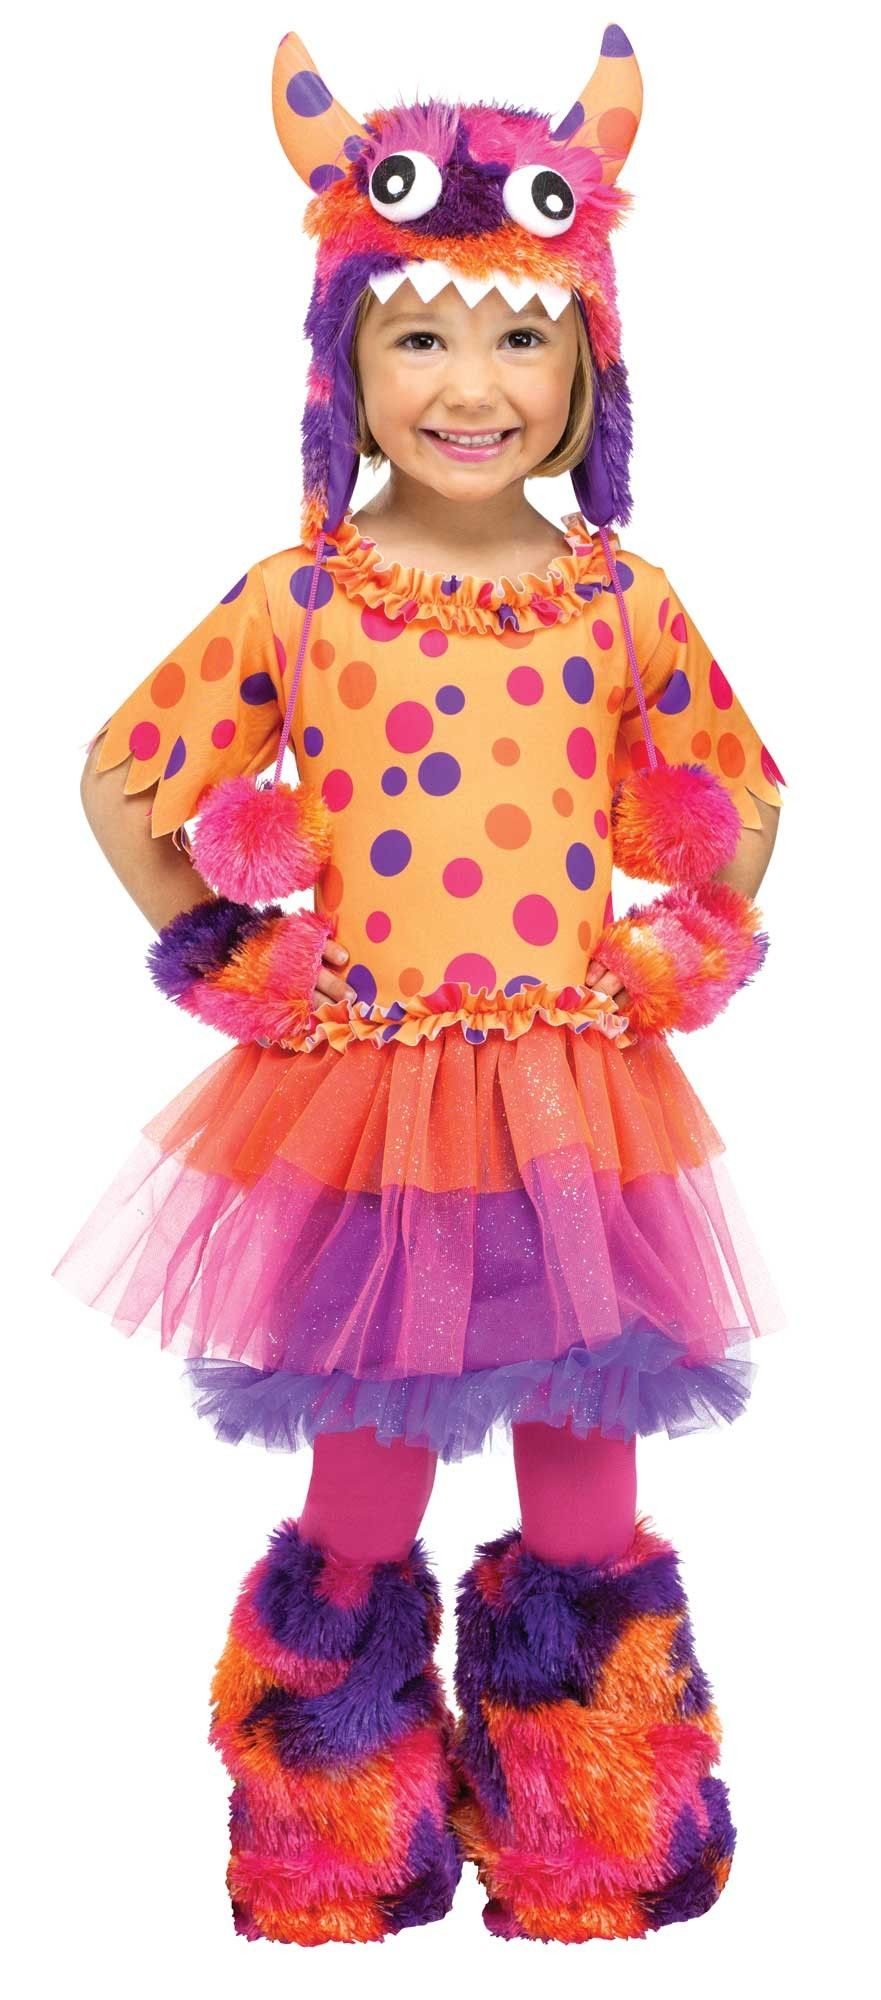 Cute Fuzzy Fifi Girlu0027s Halloween Costume - Who knew a monster could be so cute and cuddly? Check out this Fuzzy Fifi creature costume.  sc 1 st  Pinterest & Cute Fuzzy Fifi Girlu0027s Halloween Costume | Pinterest | Halloween ...